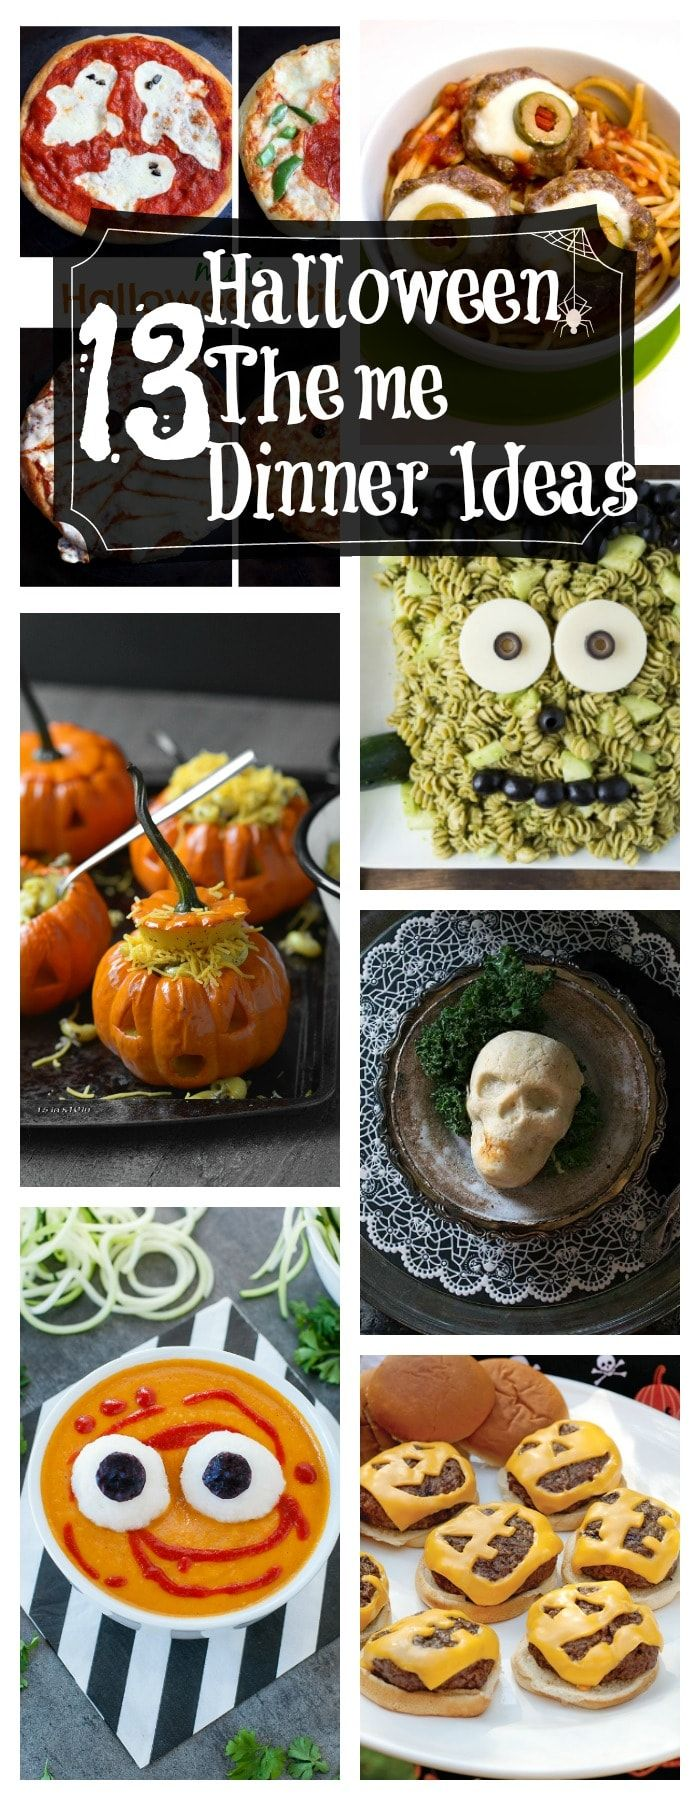 Healthy Halloween Themed Dinner Ideas